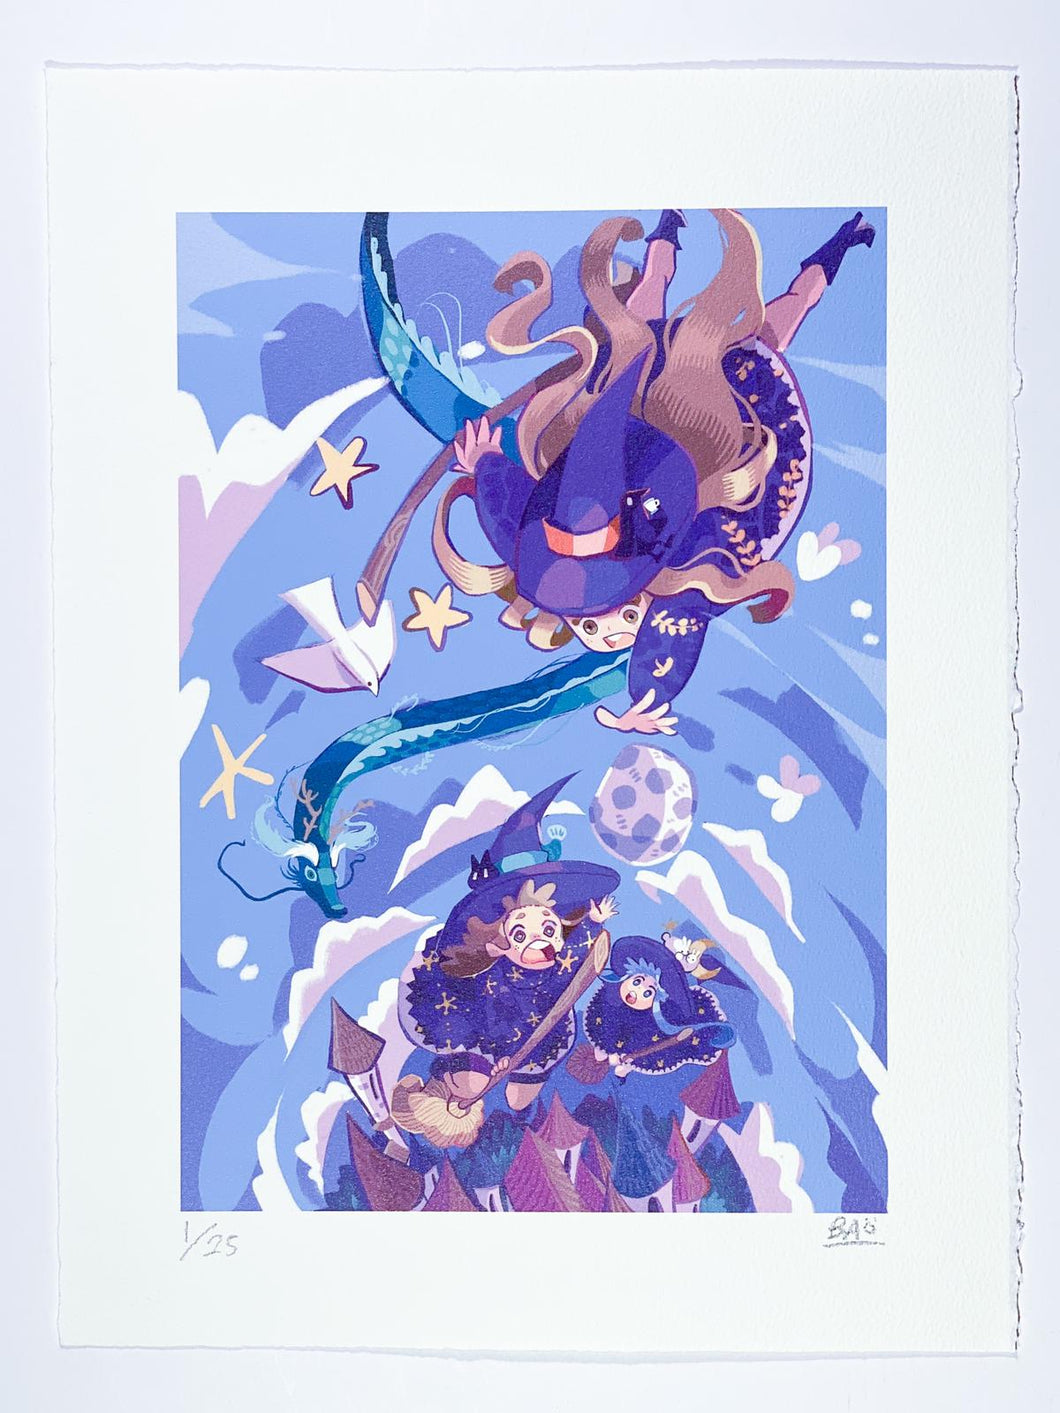 Witches digital drawing blue and purple color printed on paper in limited edition by Hong kong street artist Bao Ho